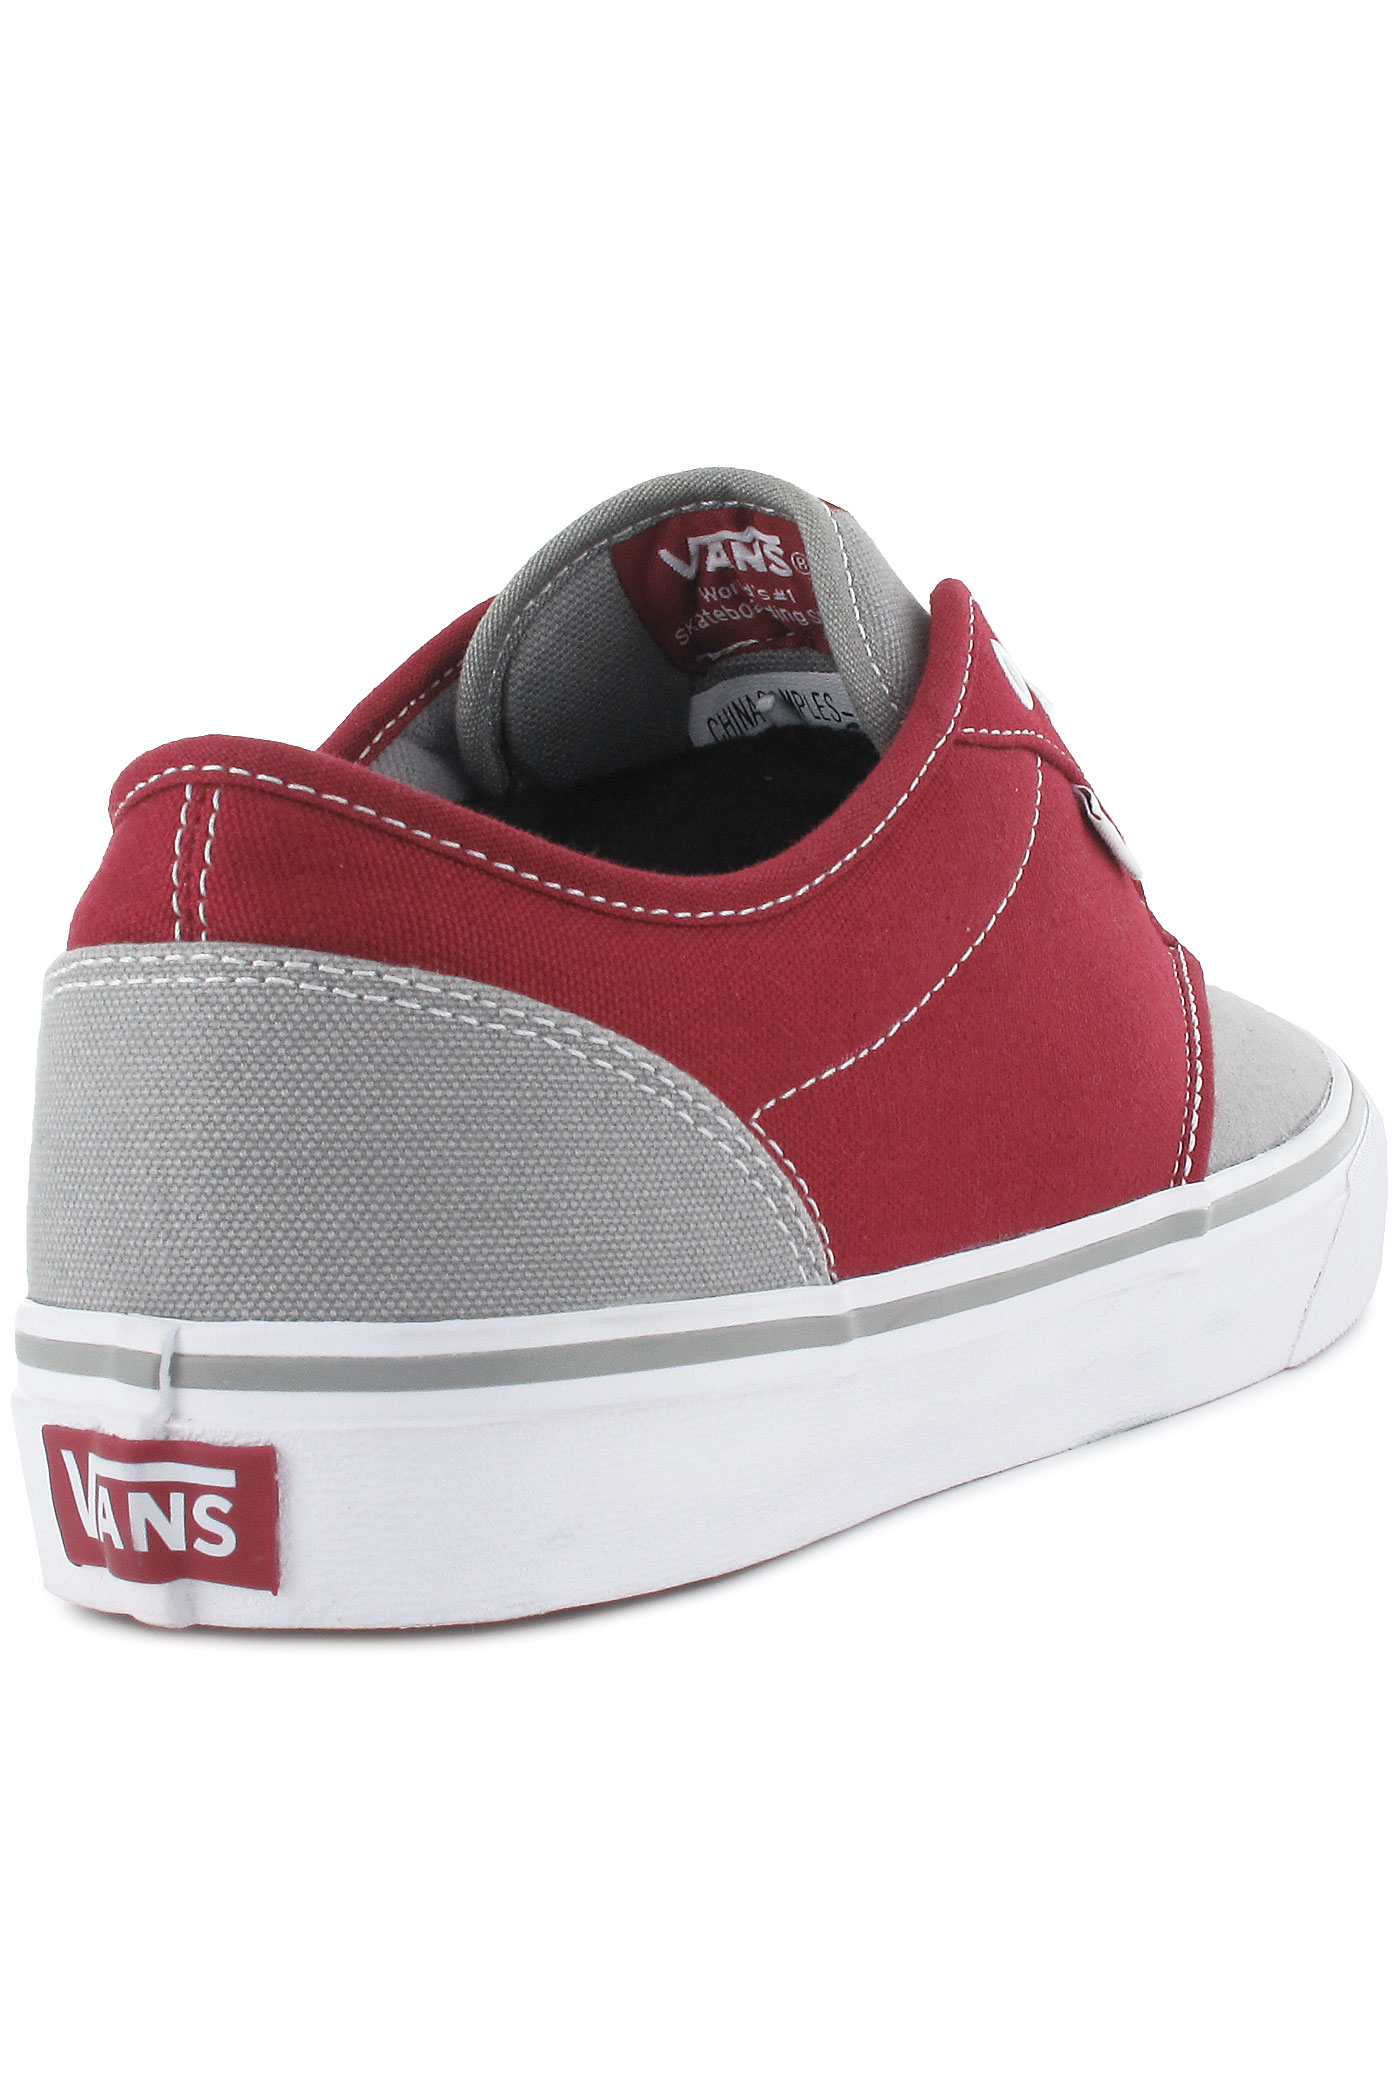 vans atwood red grey